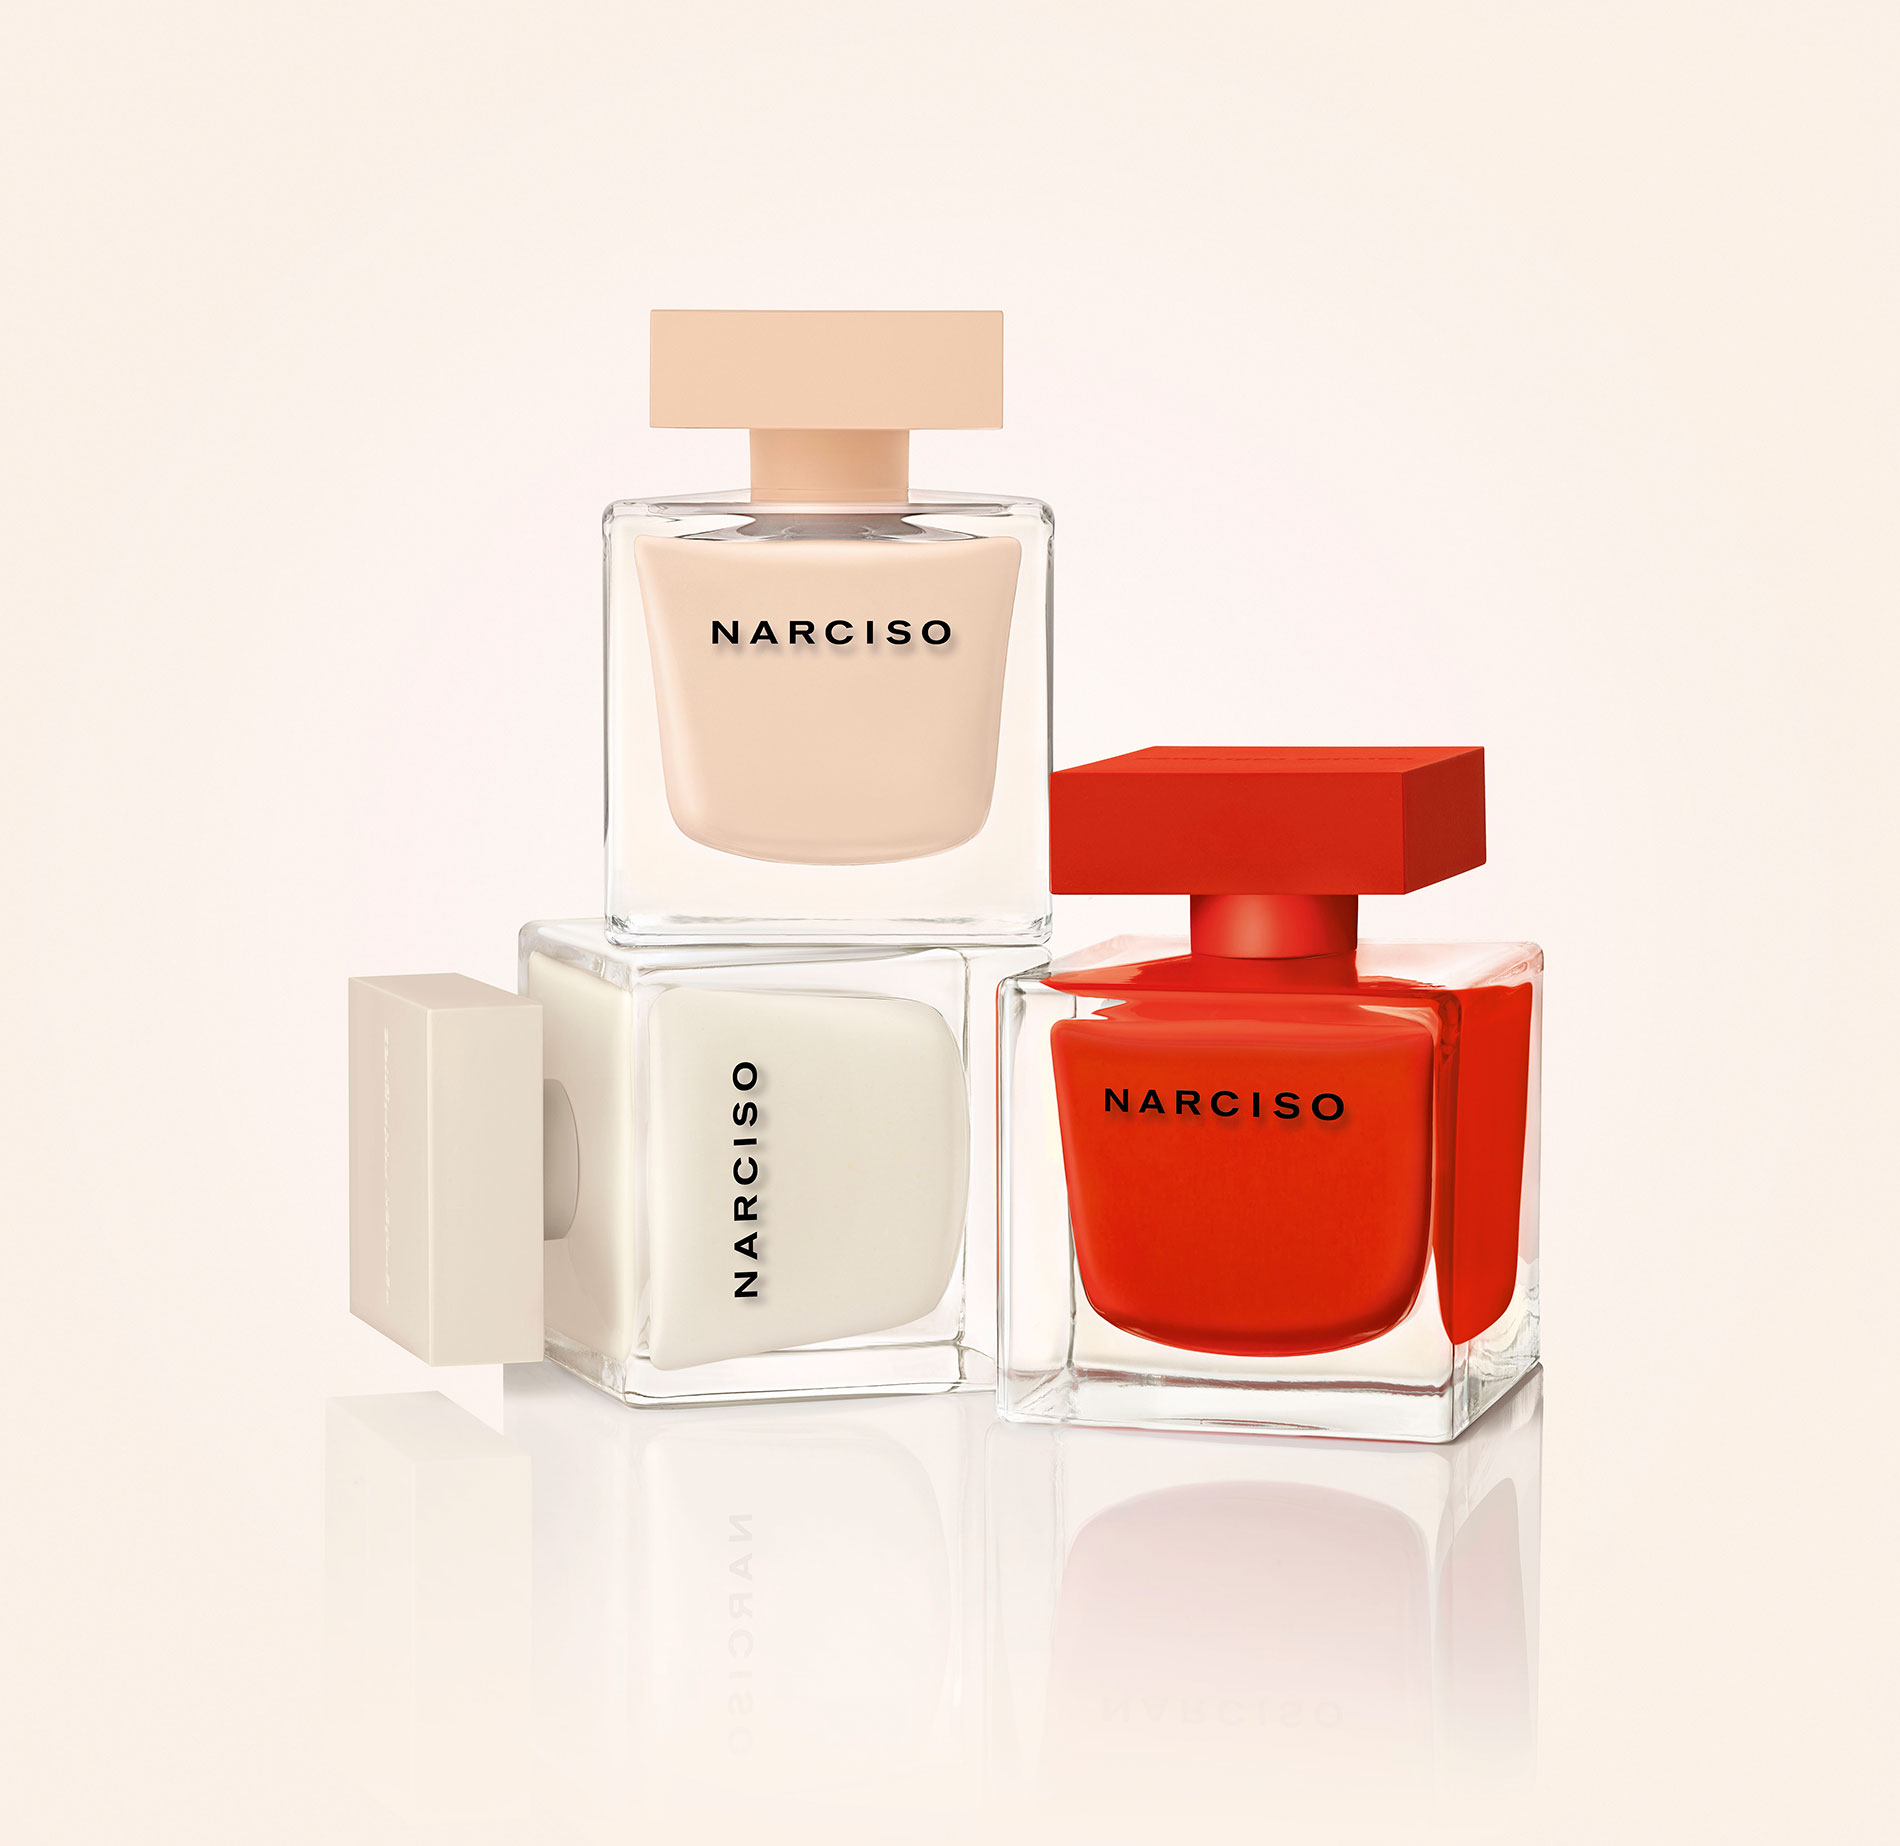 narciso rouge narciso rodriguez perfume a new fragrance for women 2018. Black Bedroom Furniture Sets. Home Design Ideas